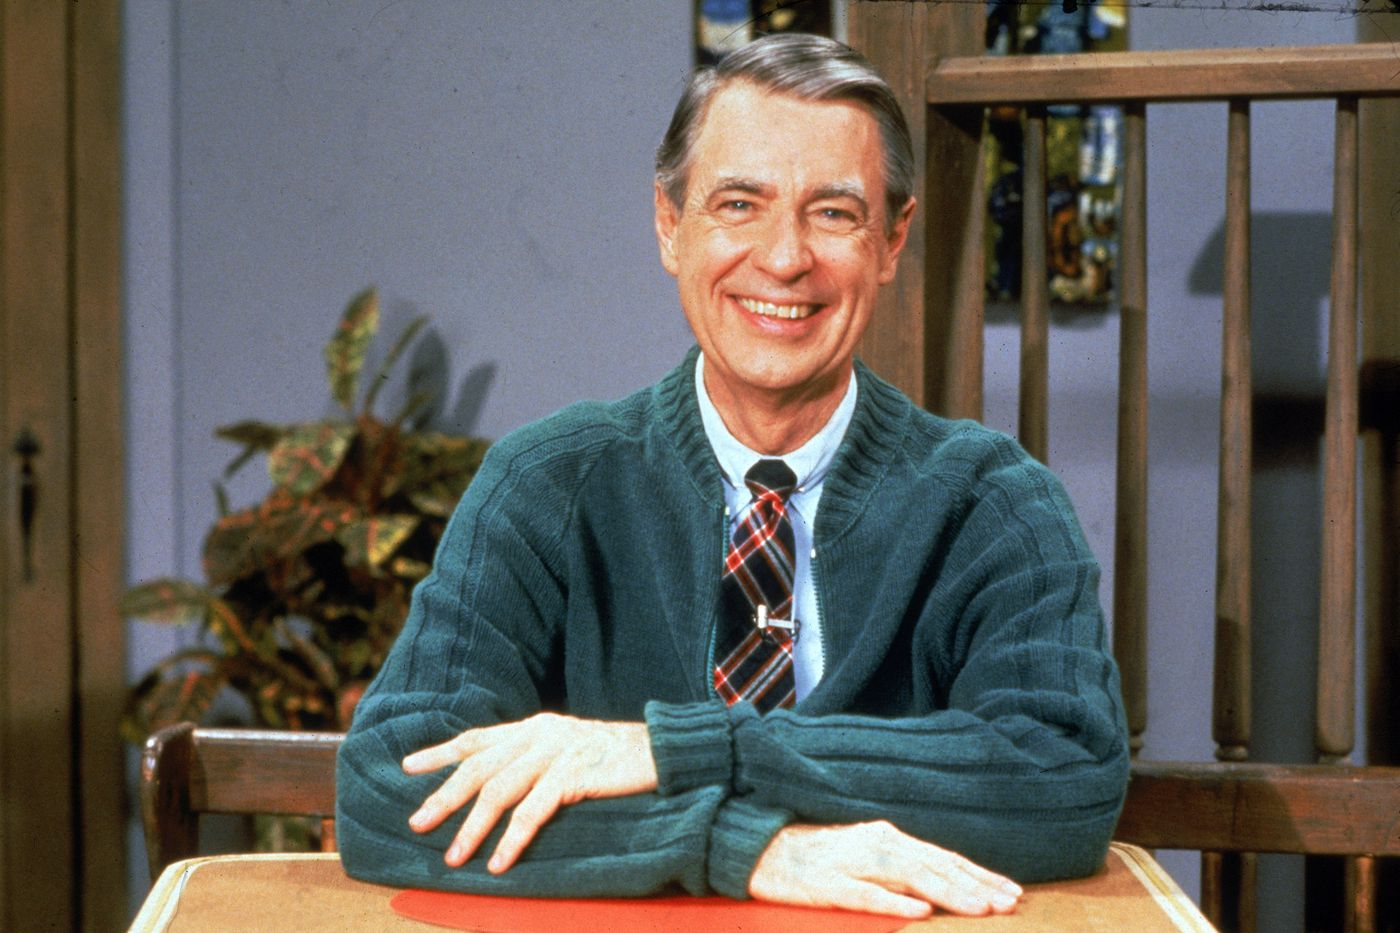 Mister Rogers Grown Up Fans Flood Twitch With Voice Mail Appreciations Polygon